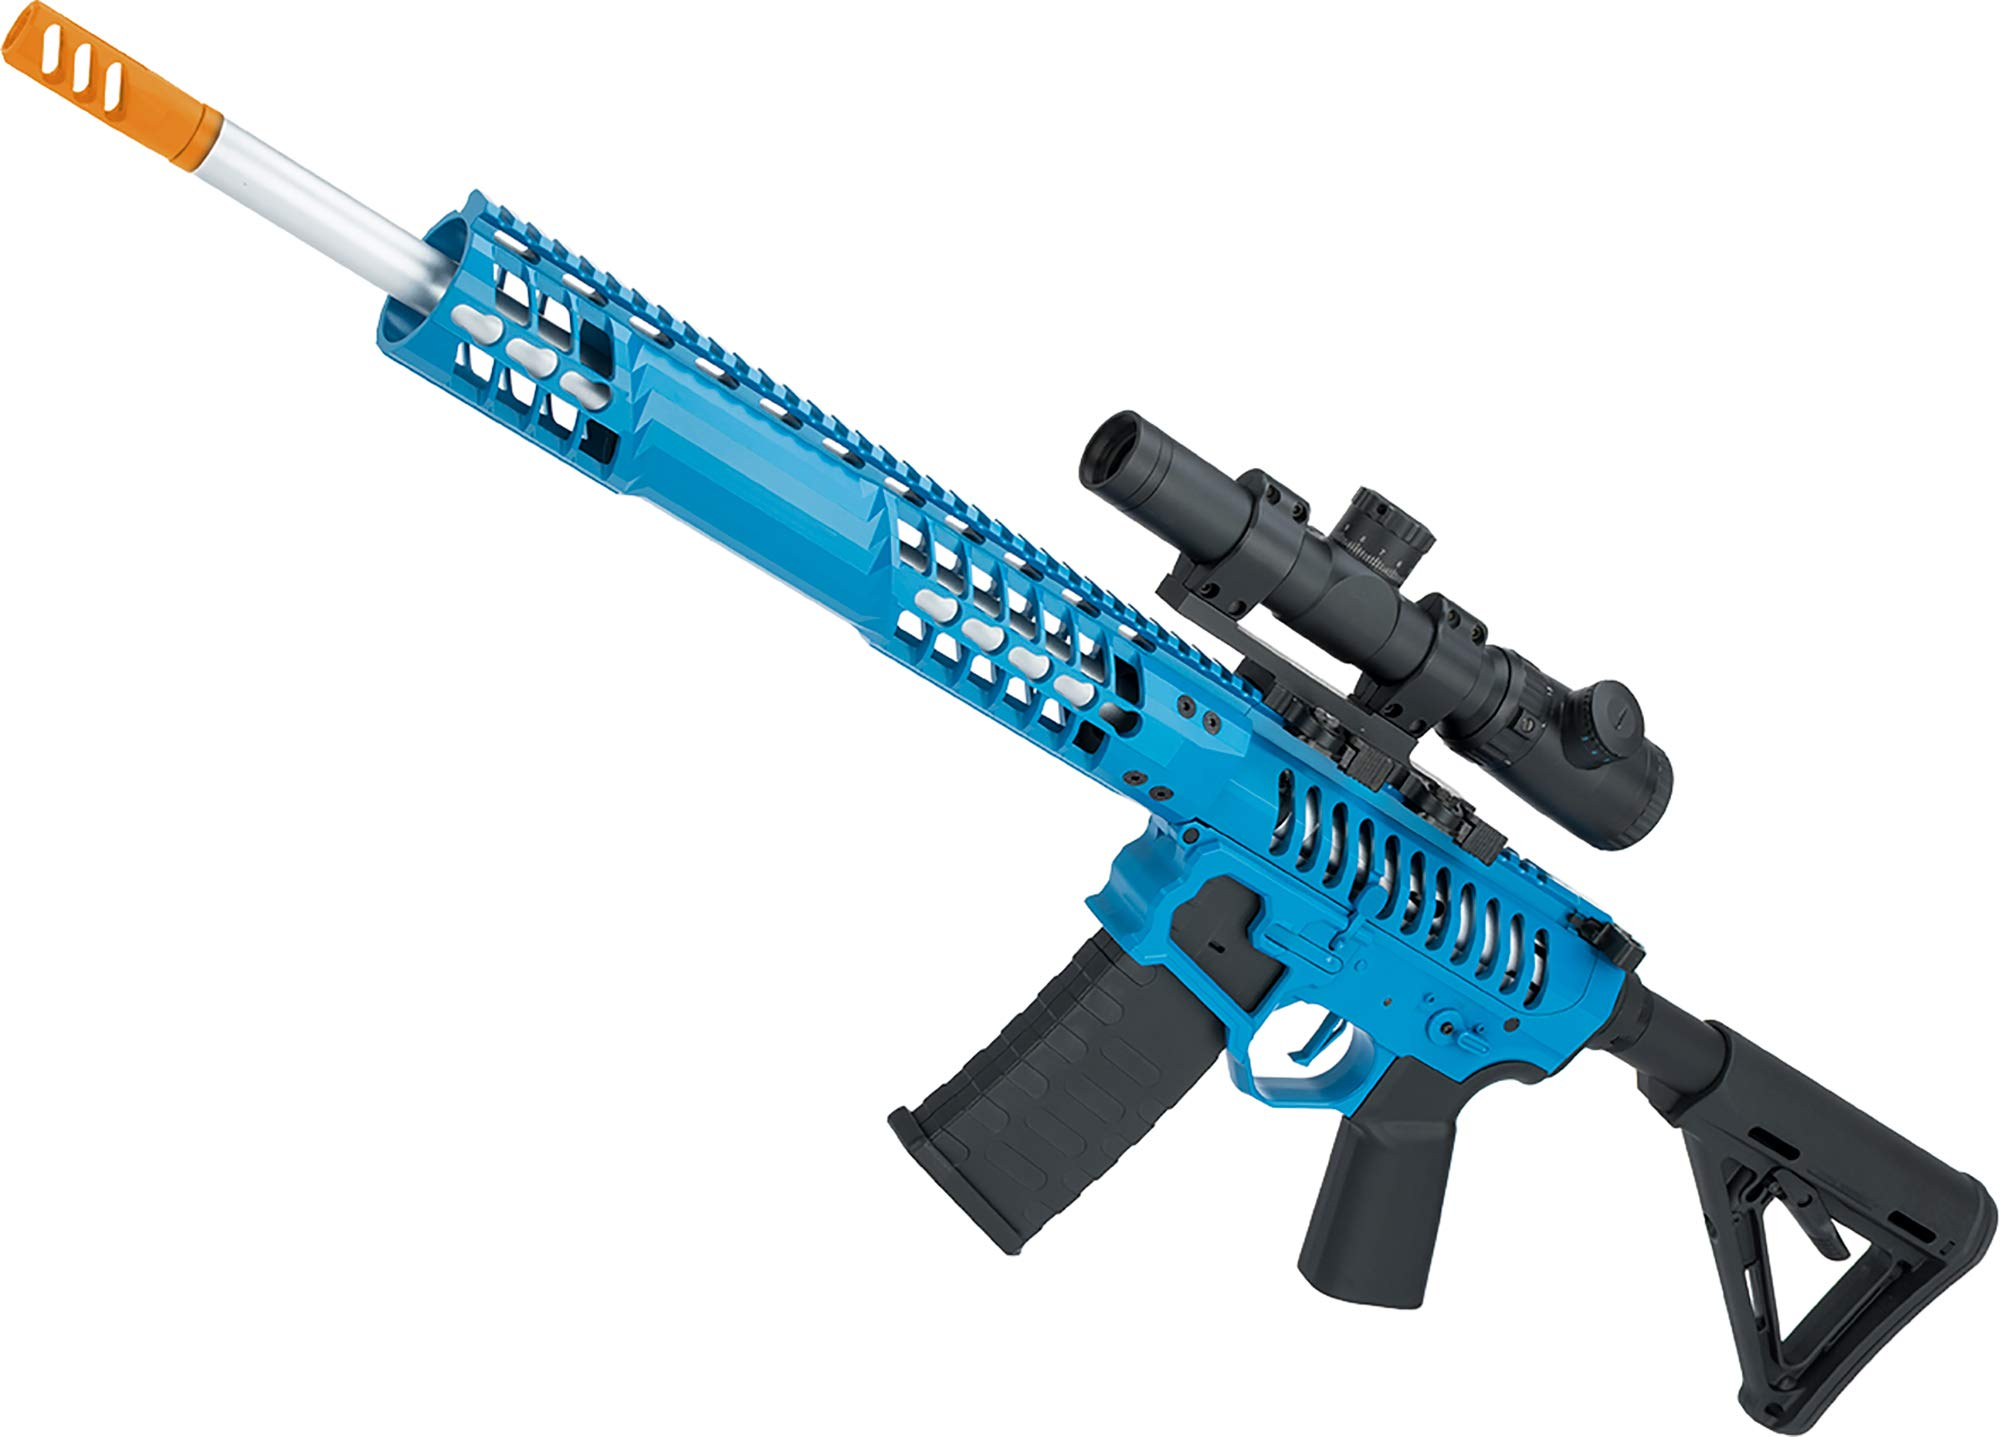 Evike EMG F1 Firearms BDR-15 3G AR15 Full Metal Airsoft AEG Rifle (Color: Blue Selector/Magpul MOE Stock) by Evike